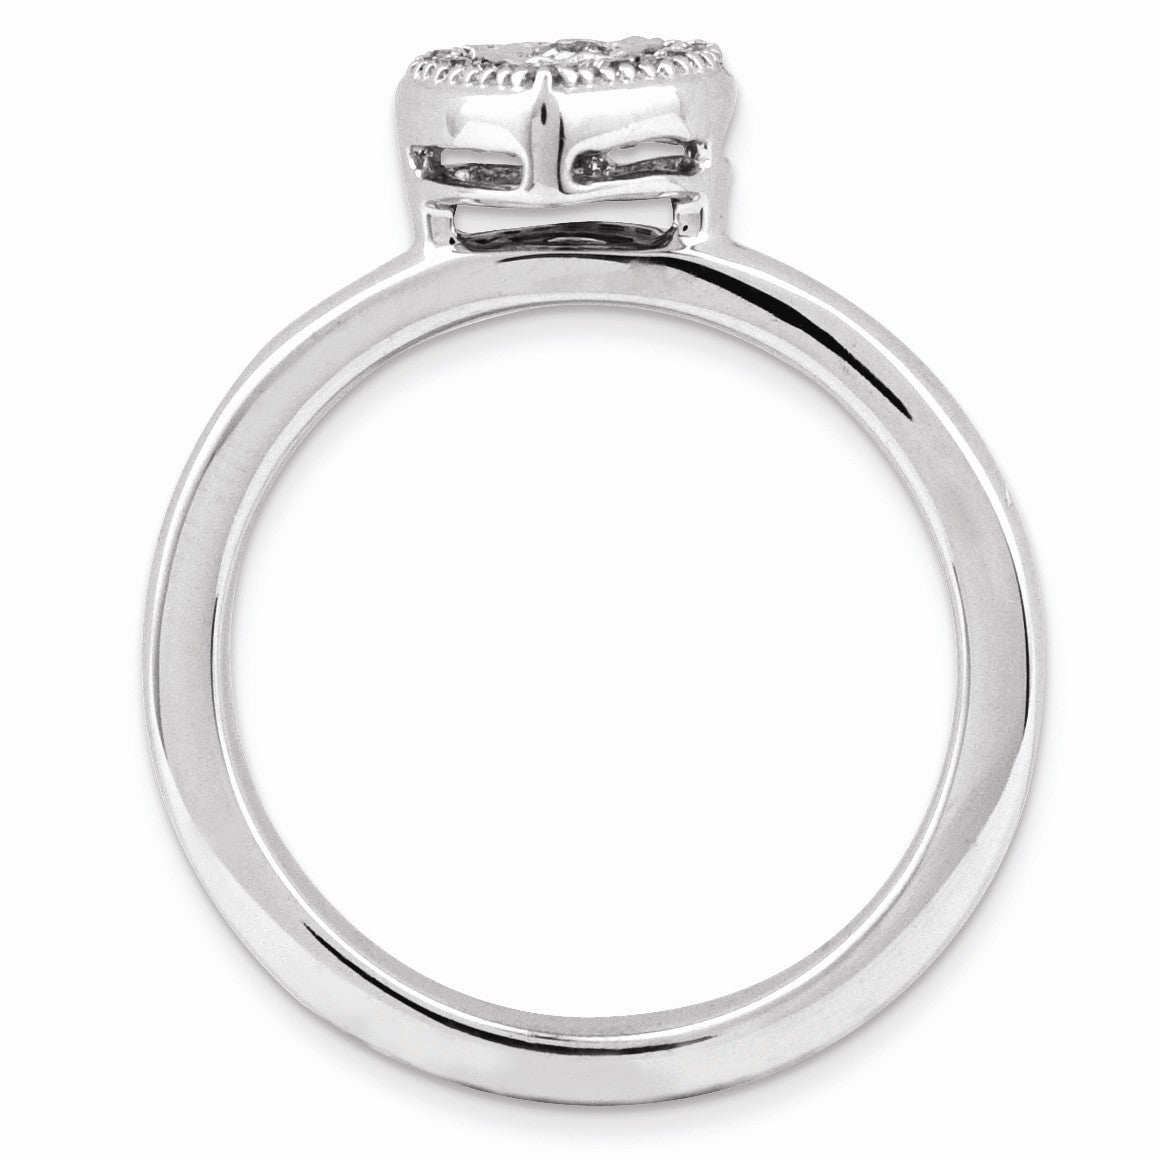 Alternate view of the Sterling Silver Stackable 1/8 Cttw HI/I3 Diamond 7mm Heart Ring by The Black Bow Jewelry Co.